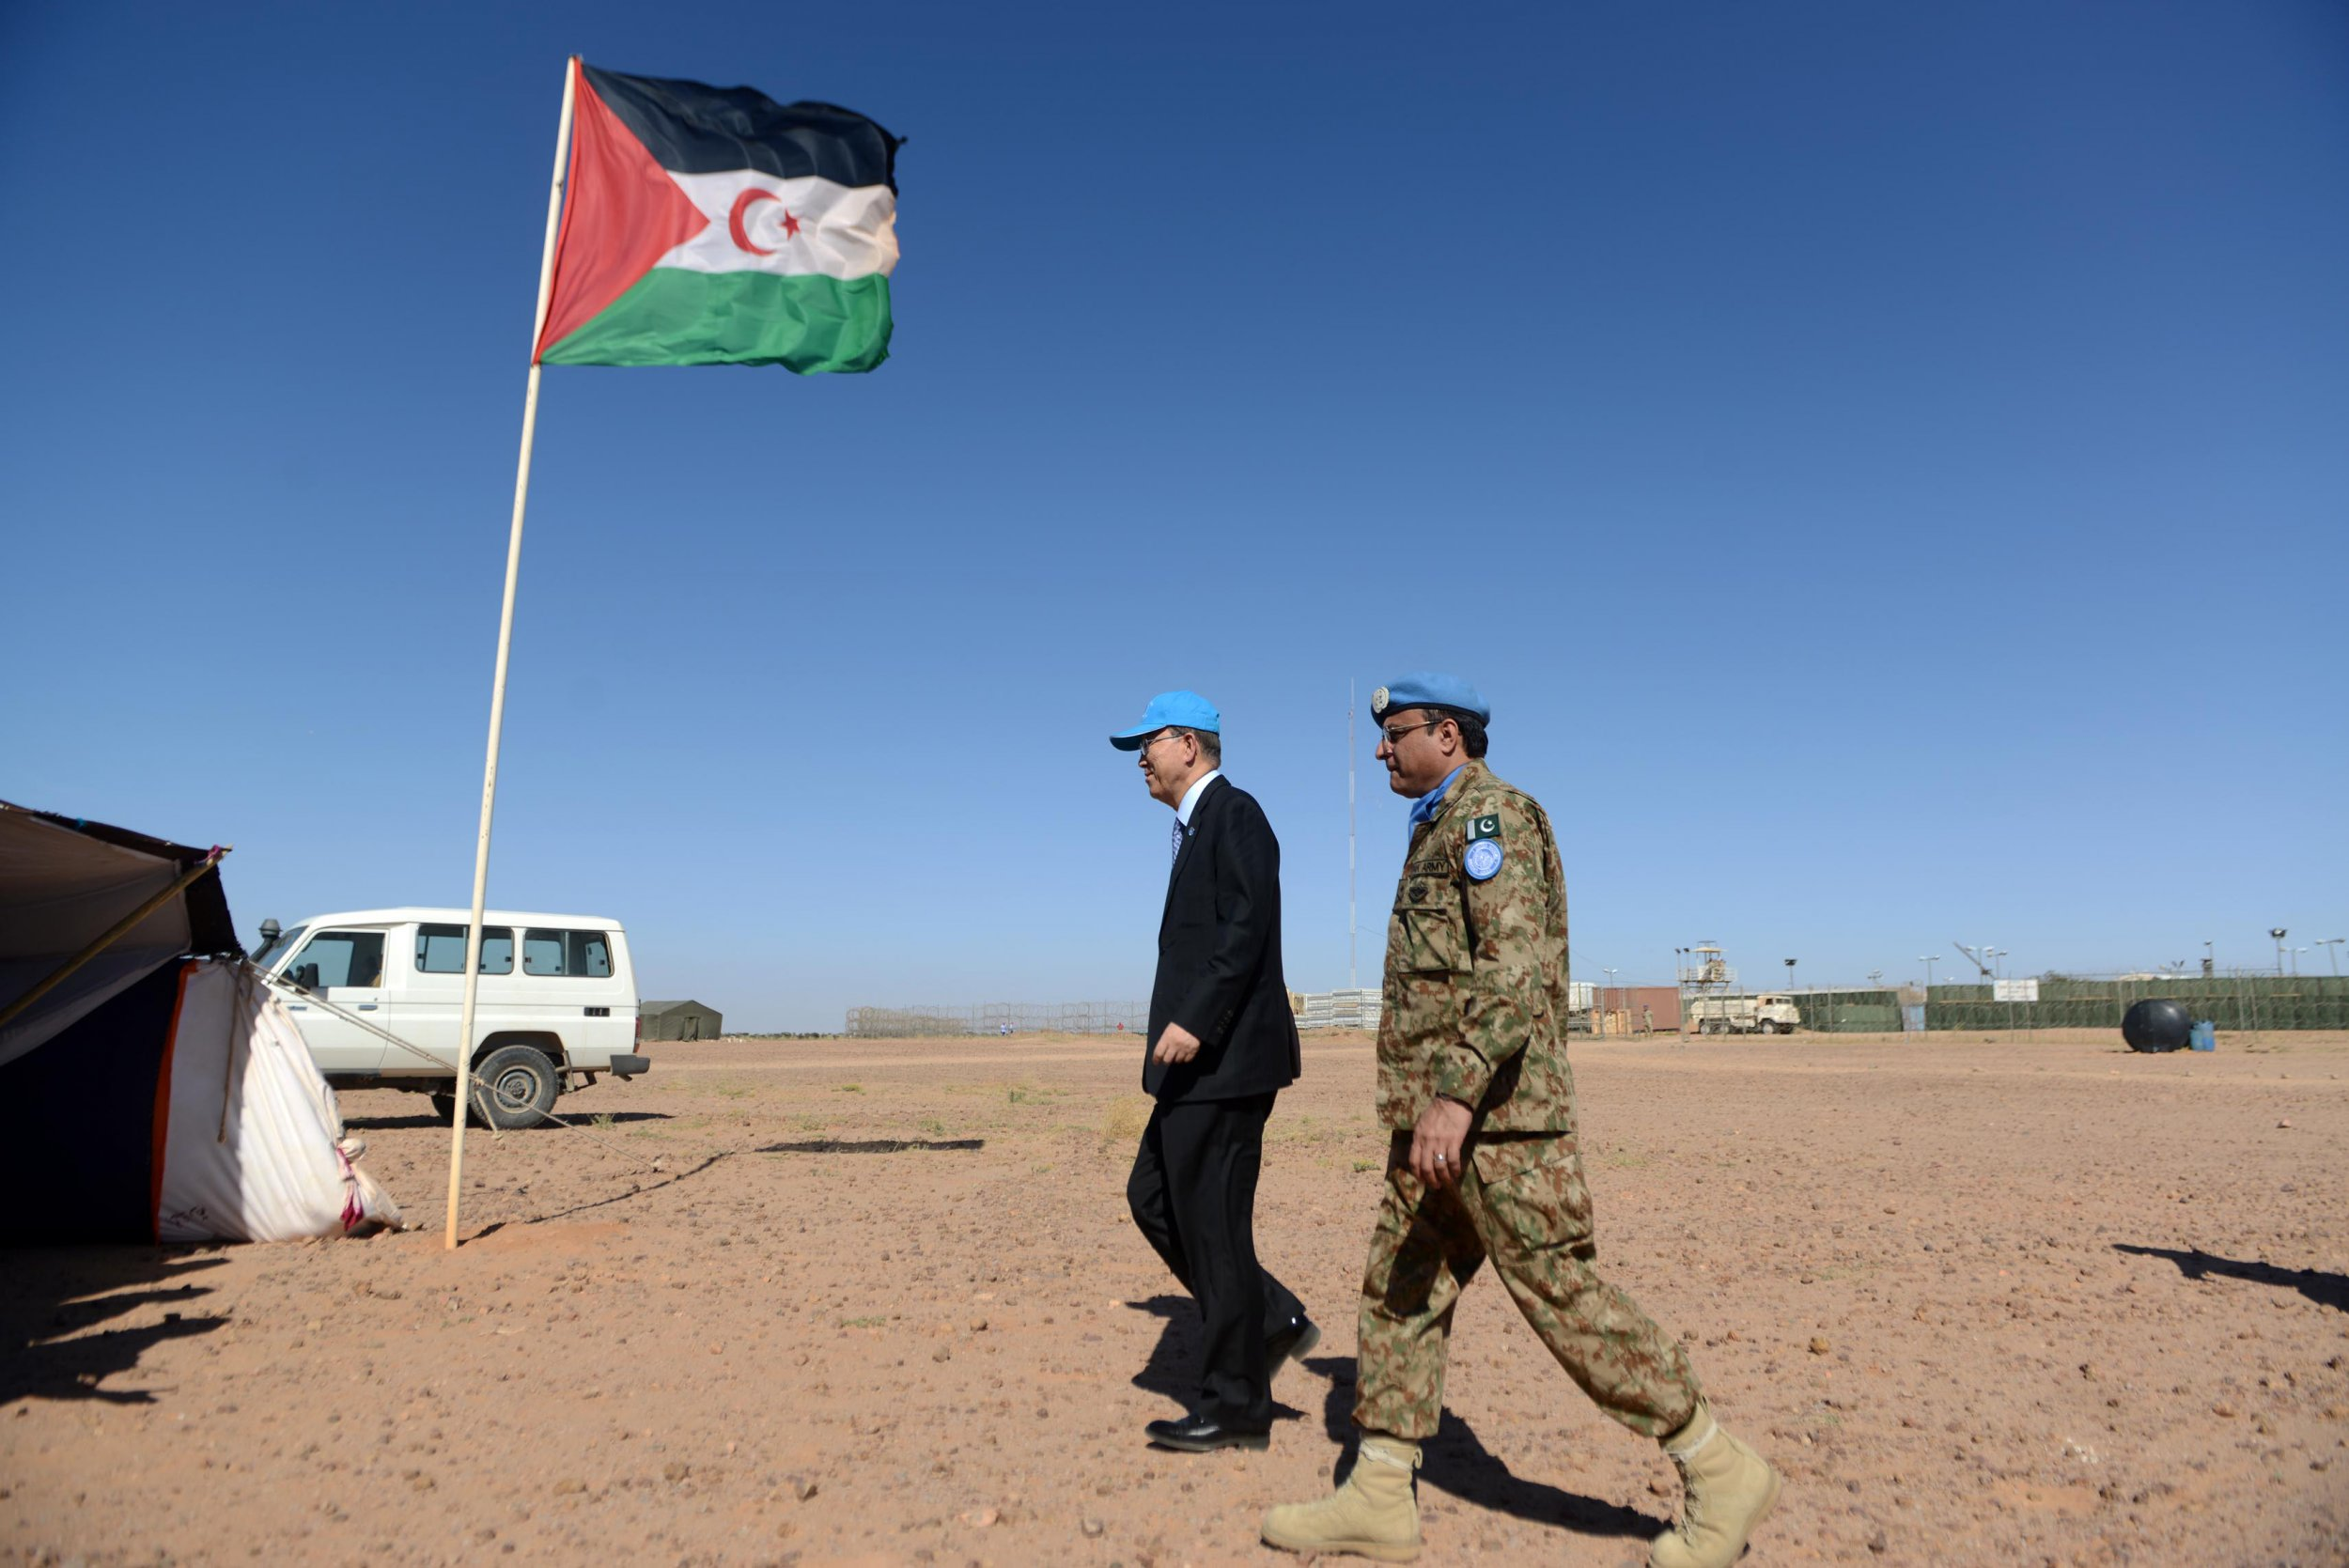 Ban Ki-moon meets with the Polisario Front in Western Sahara.